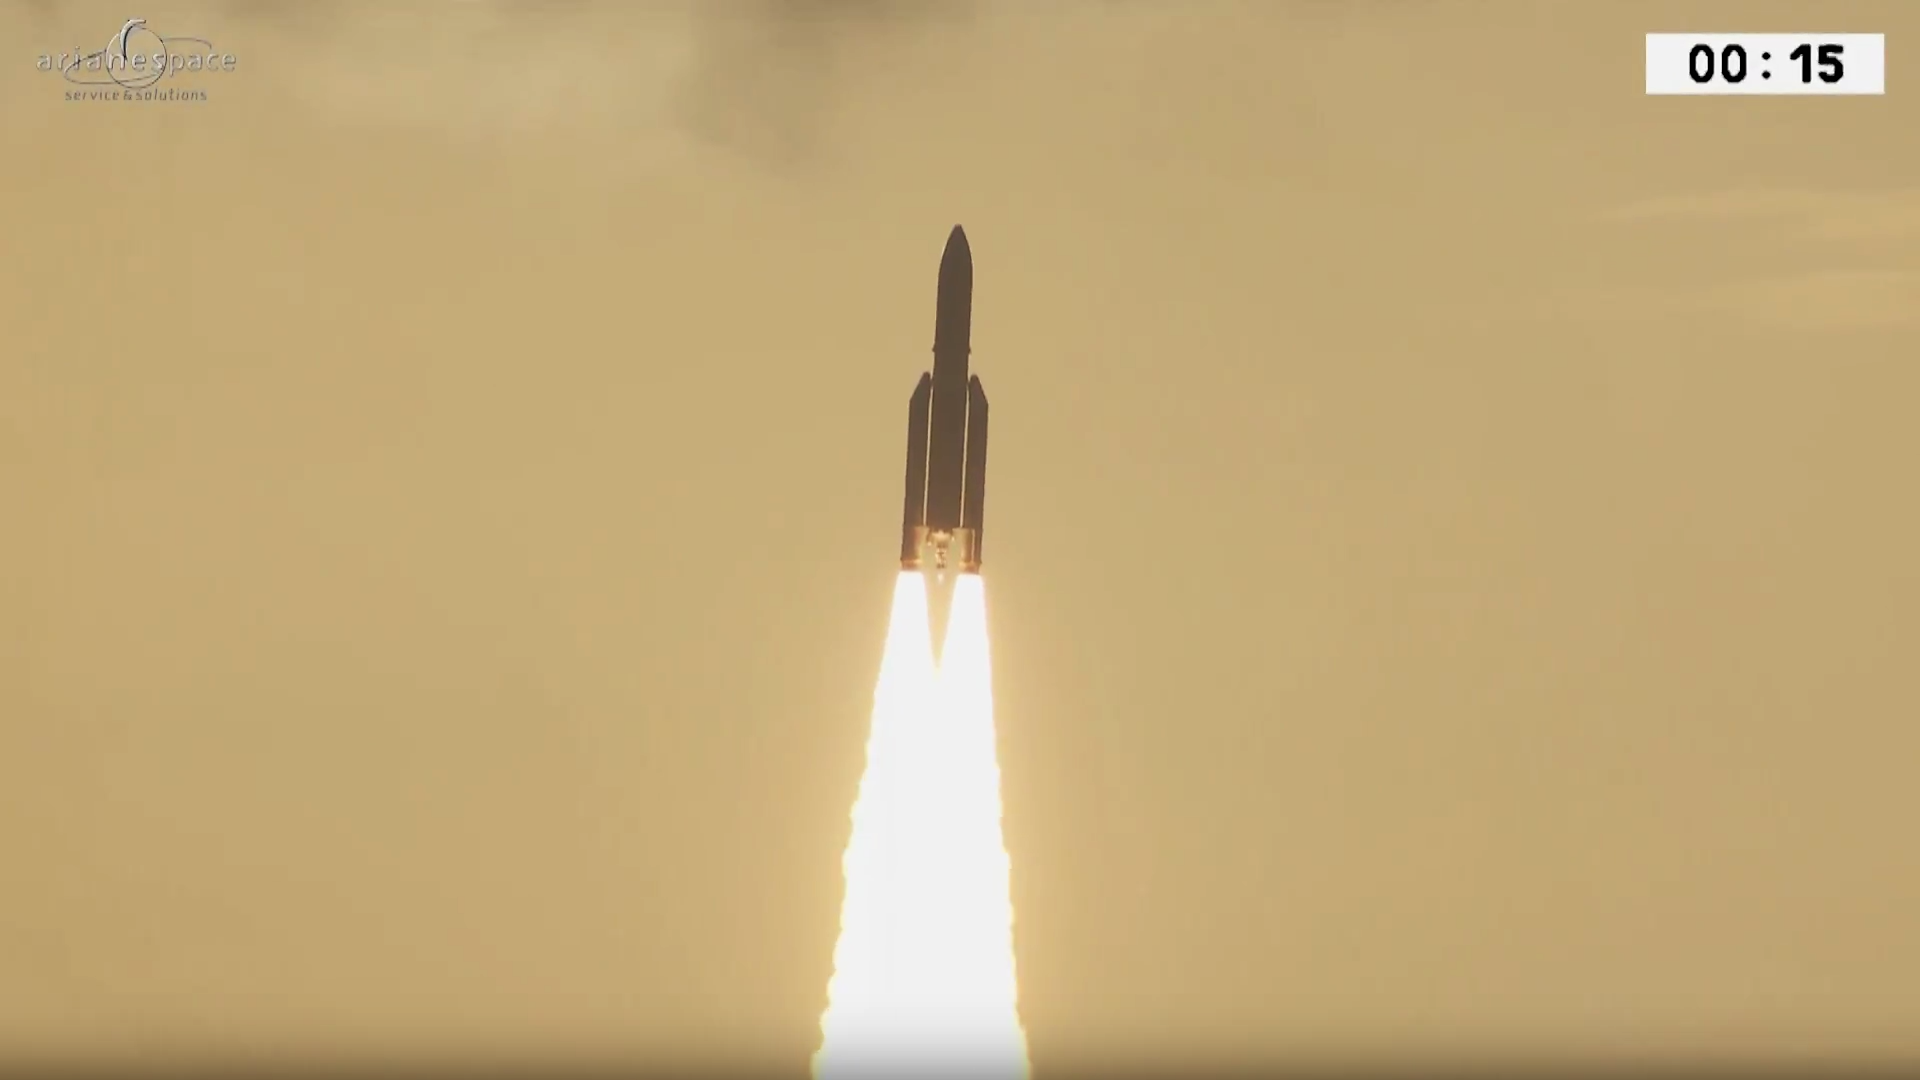 Hellas Sat 3 successfully launched